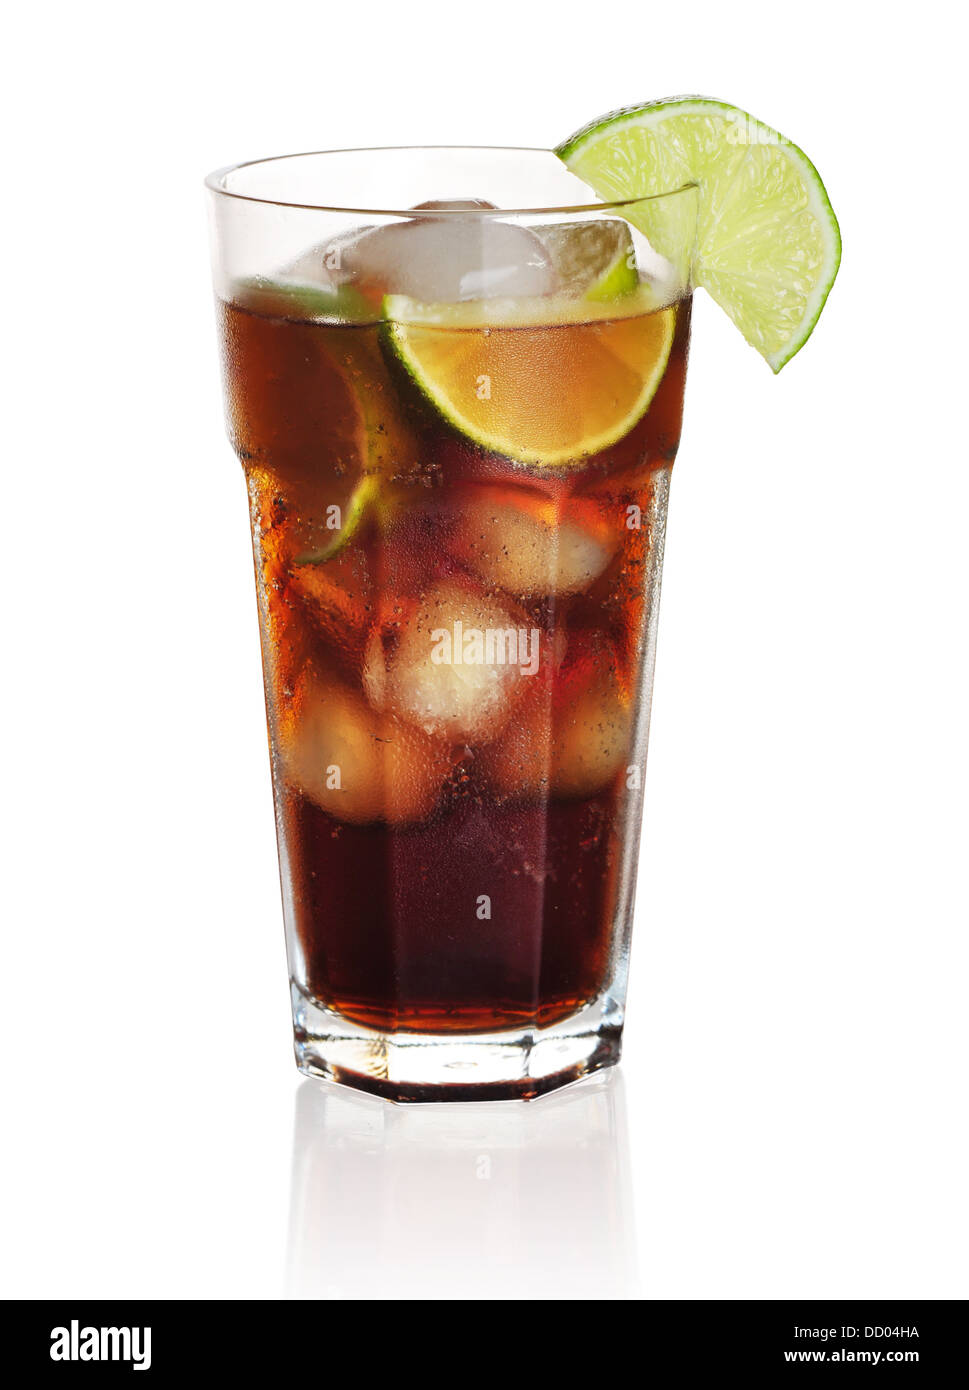 Cuba libre cocktail isolation on a white background - Stock Image